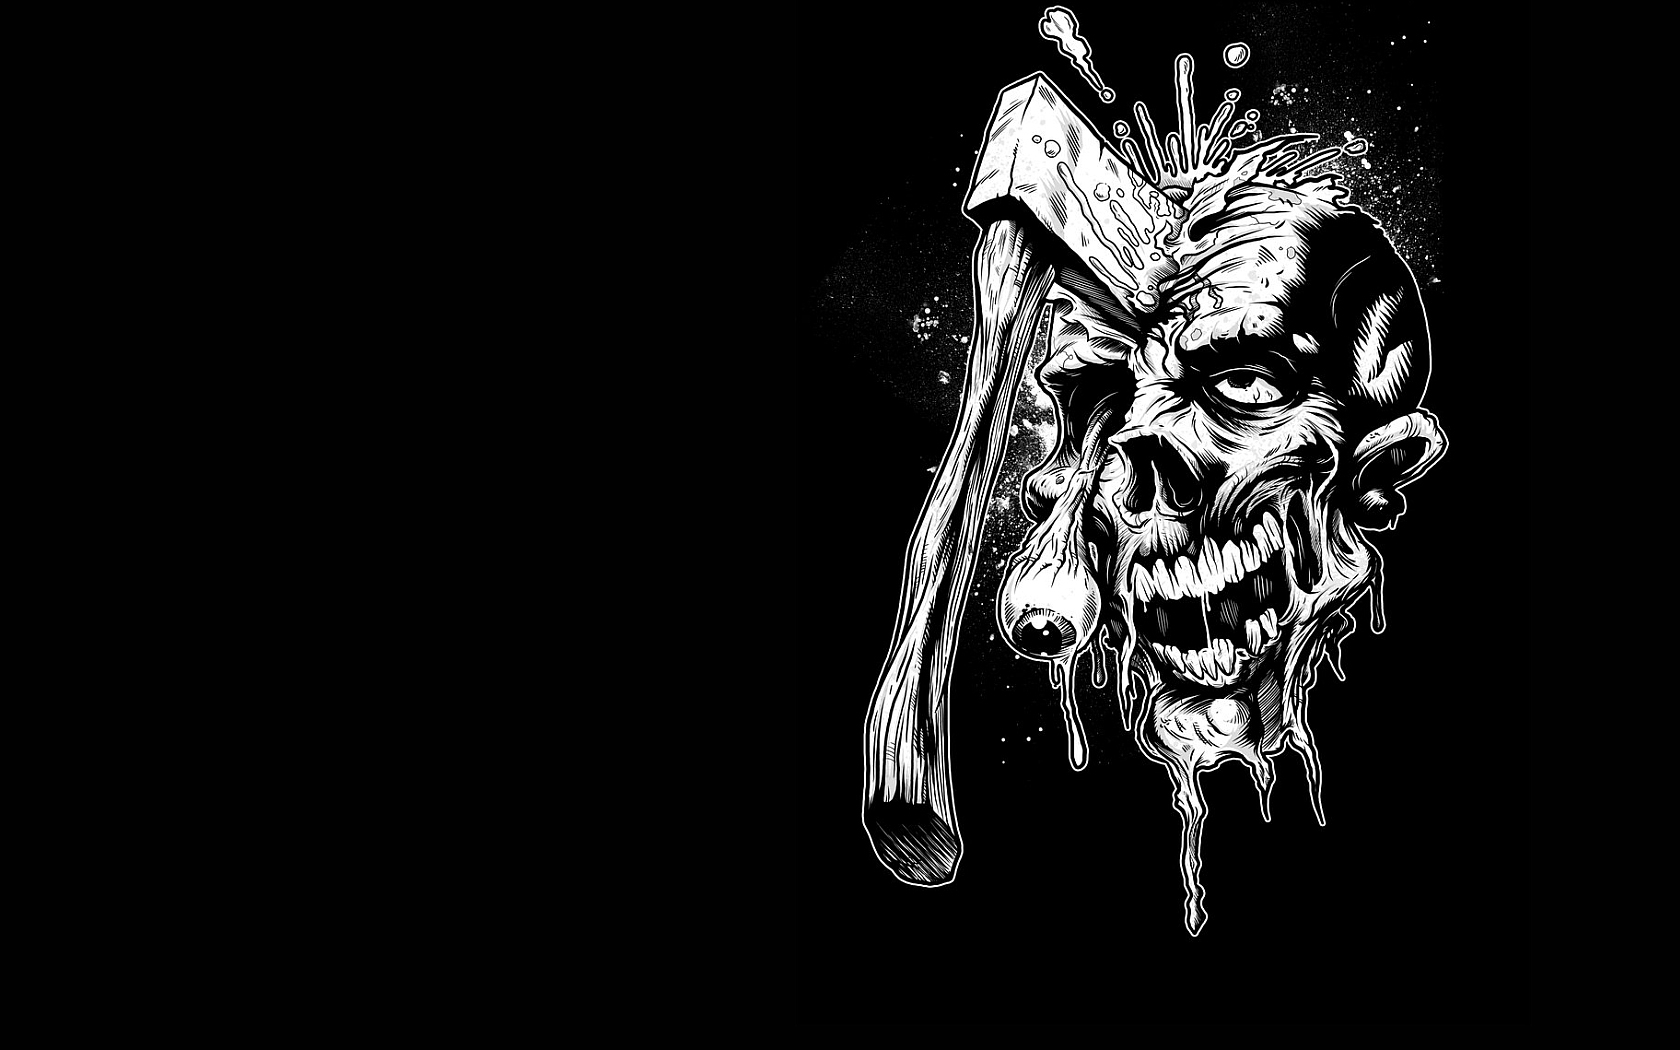 MLMMLM Free Zombie Wallpapers, BsnSCB Graphics